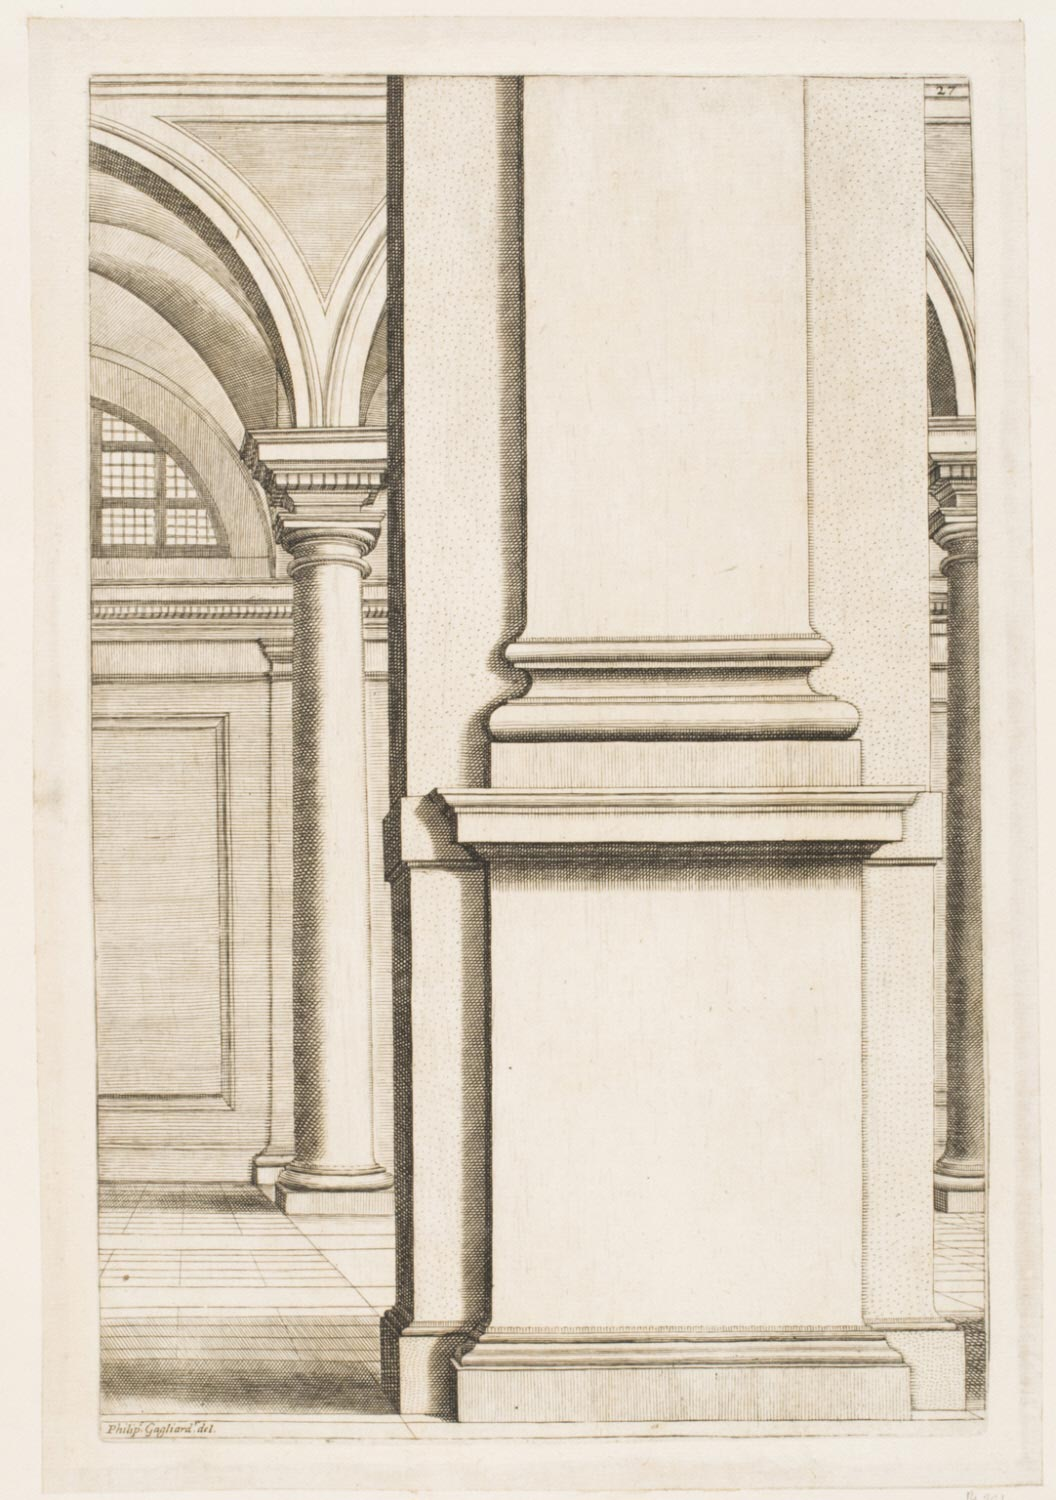 Architectural Enframement for the Portrait of a Cardinal